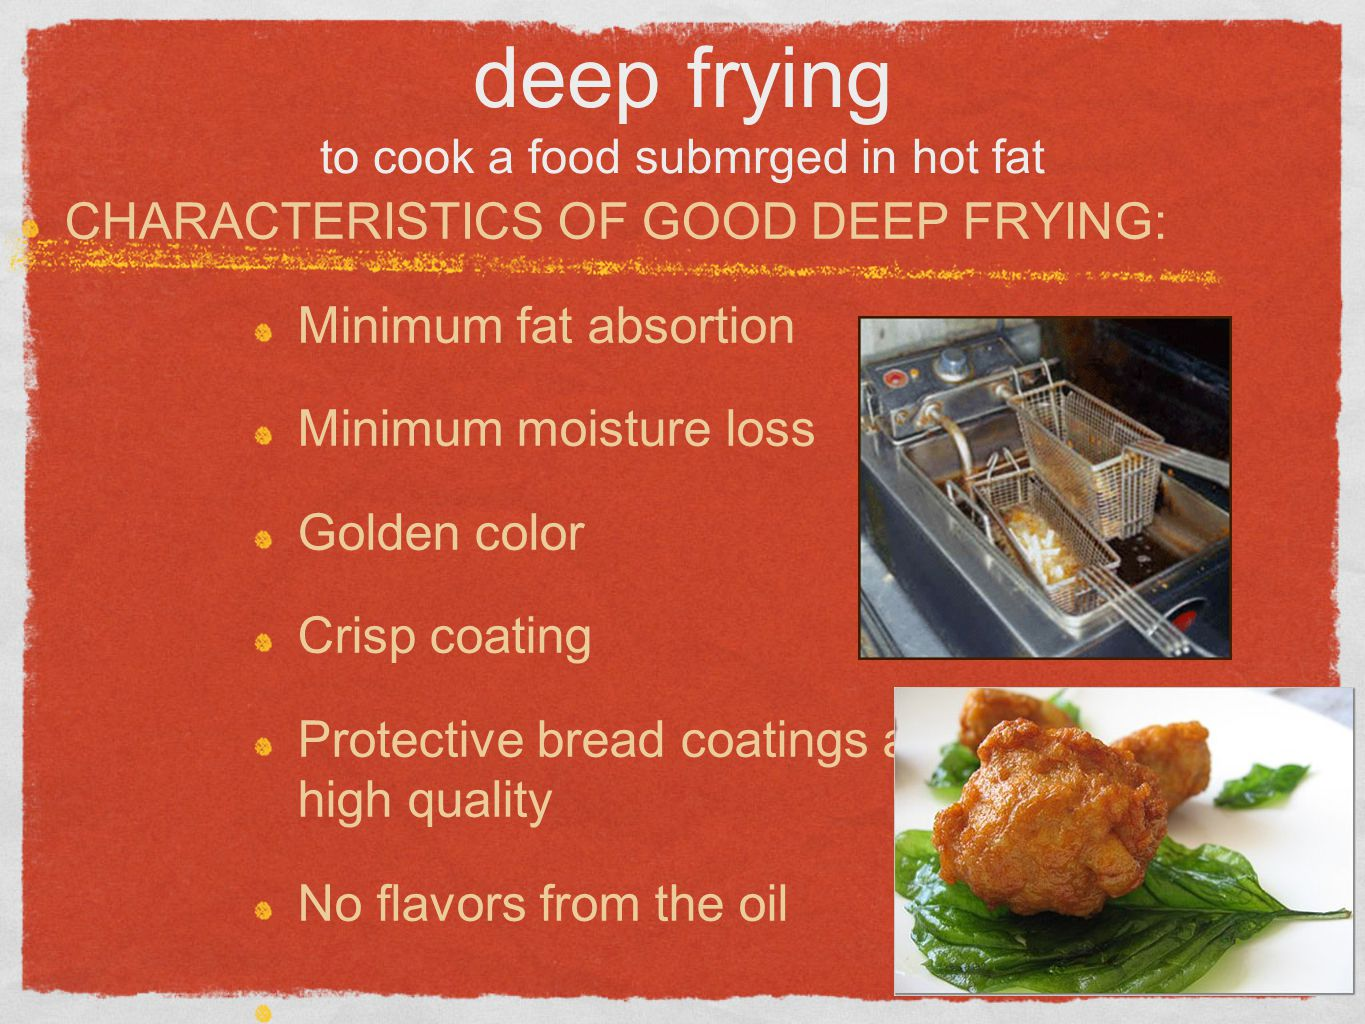 deep frying to cook a food submrged in hot fat CHARACTERISTICS OF GOOD DEEP FRYING: Minimum fat absortion Minimum moisture loss Golden color Crisp coa